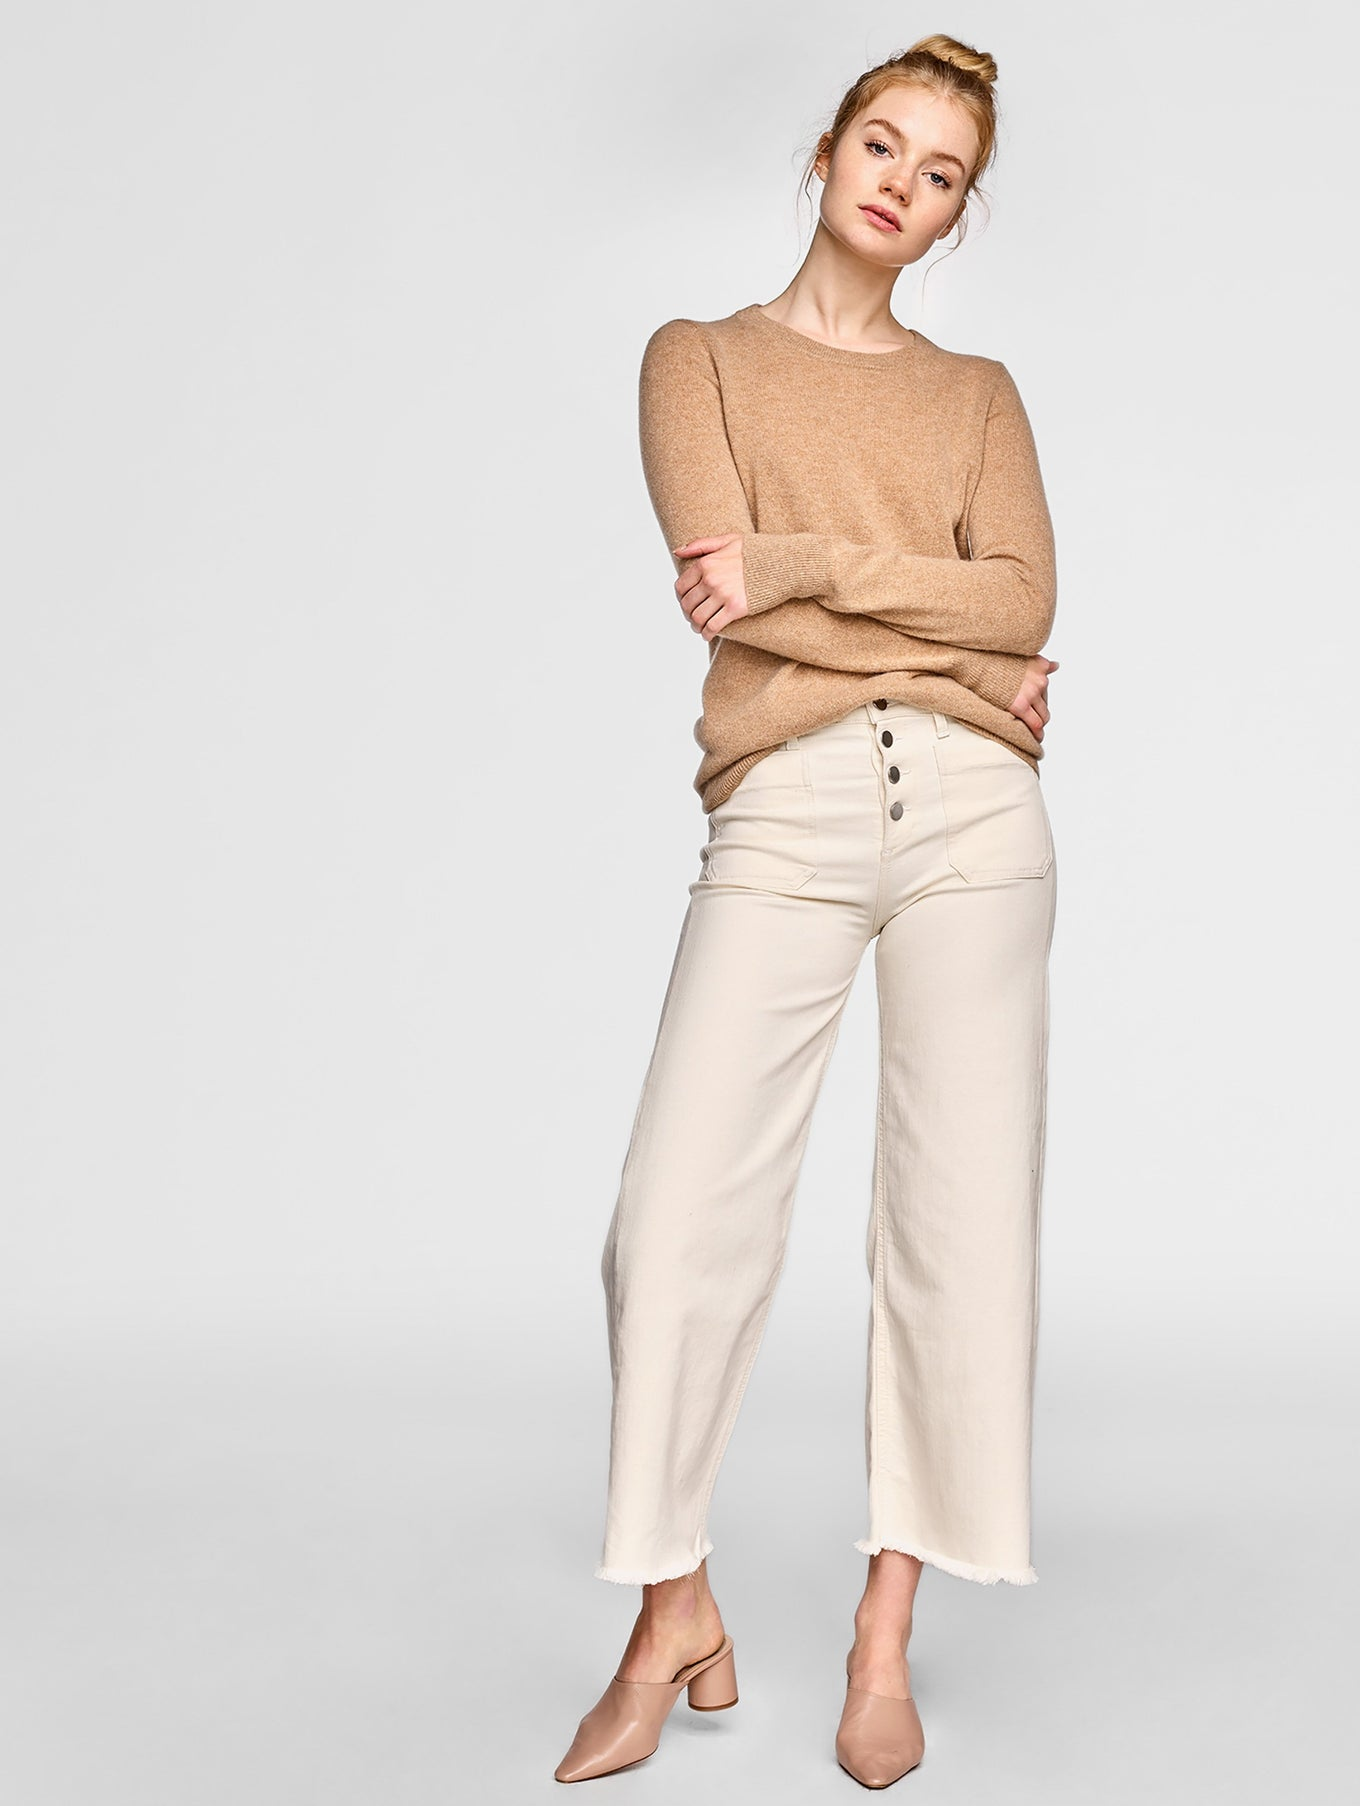 Essential Cashmere Crewneck - Camel Heather - Image 1